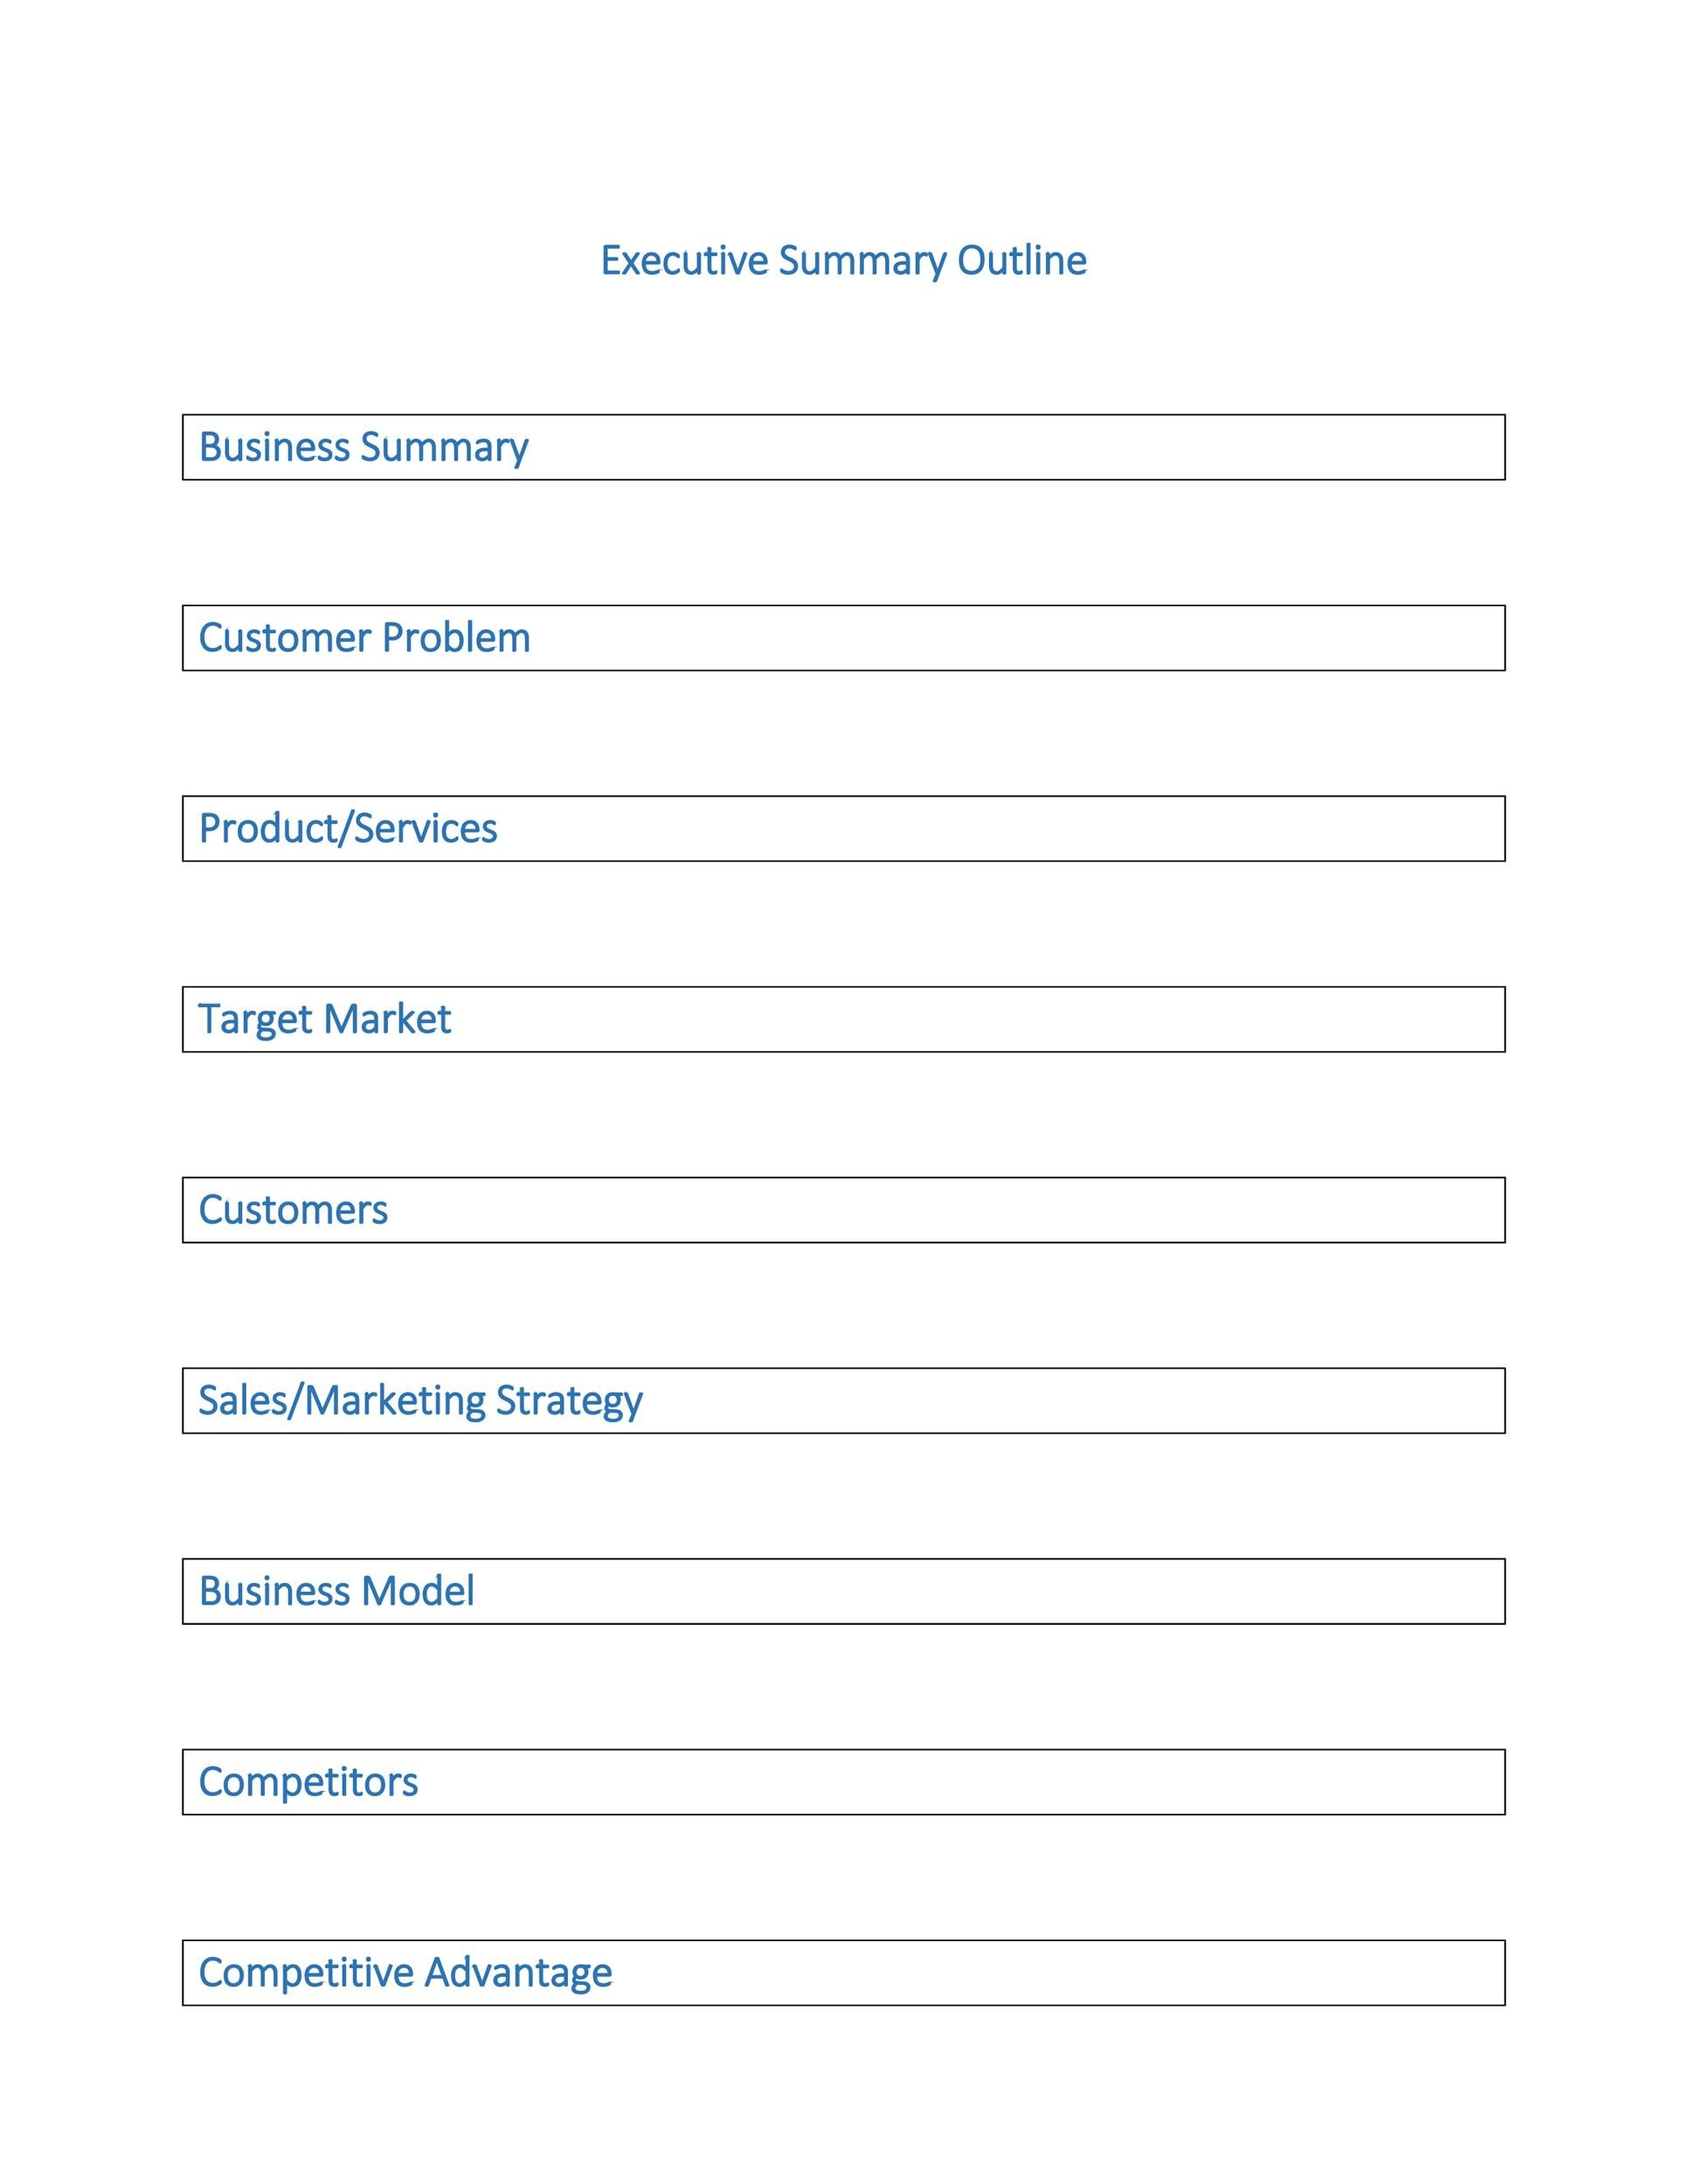 Executive Summary Template 17